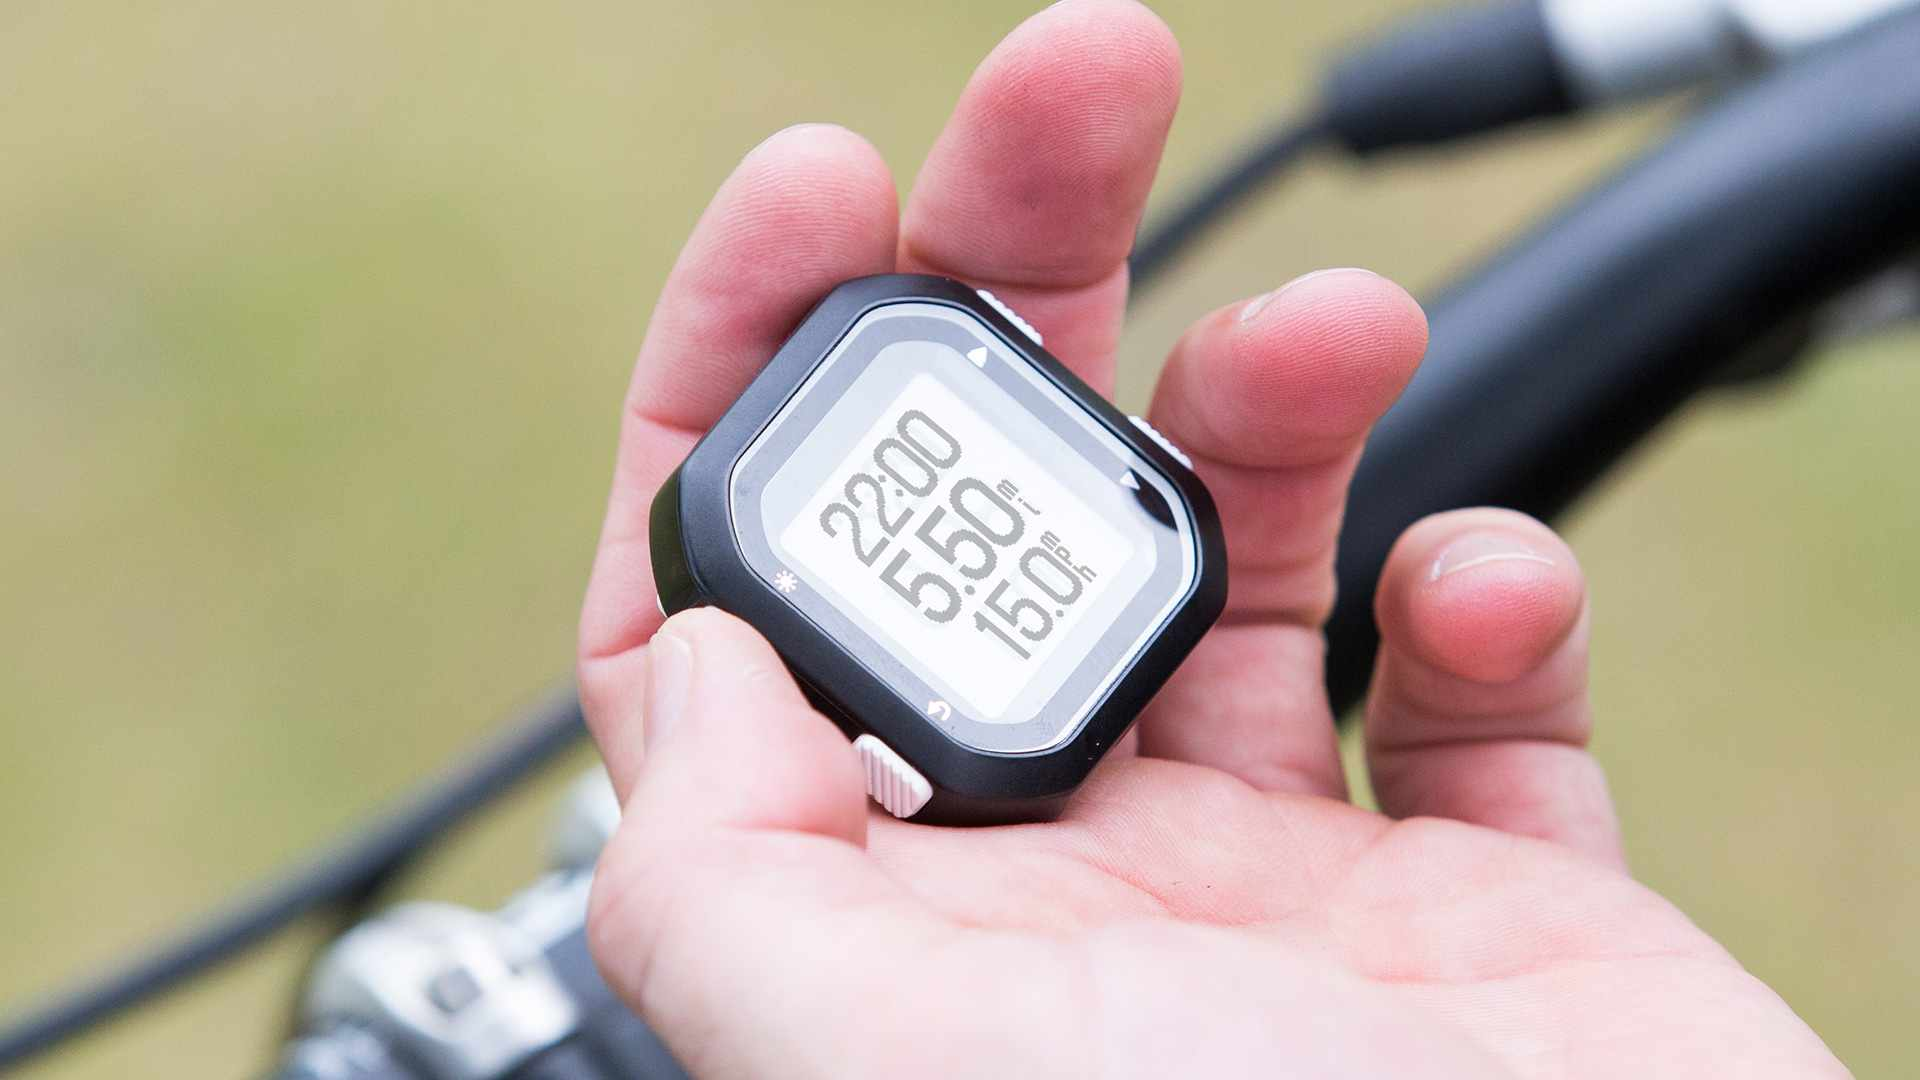 Garmin Edge 25 – the world's smallest GPS bike computer